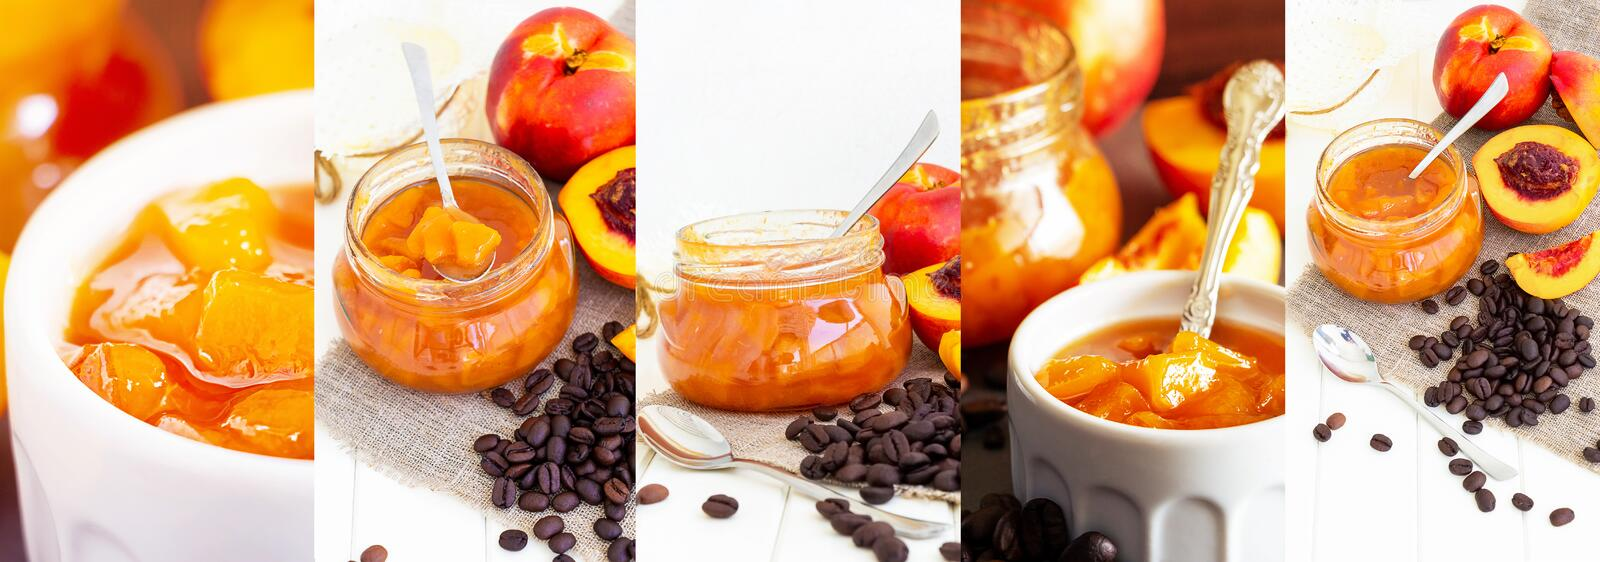 Collage photos of fruit nectarines, peach, jam and coffee beans. Light and dark background. Autumn harvest or summer billets. royalty free stock photo